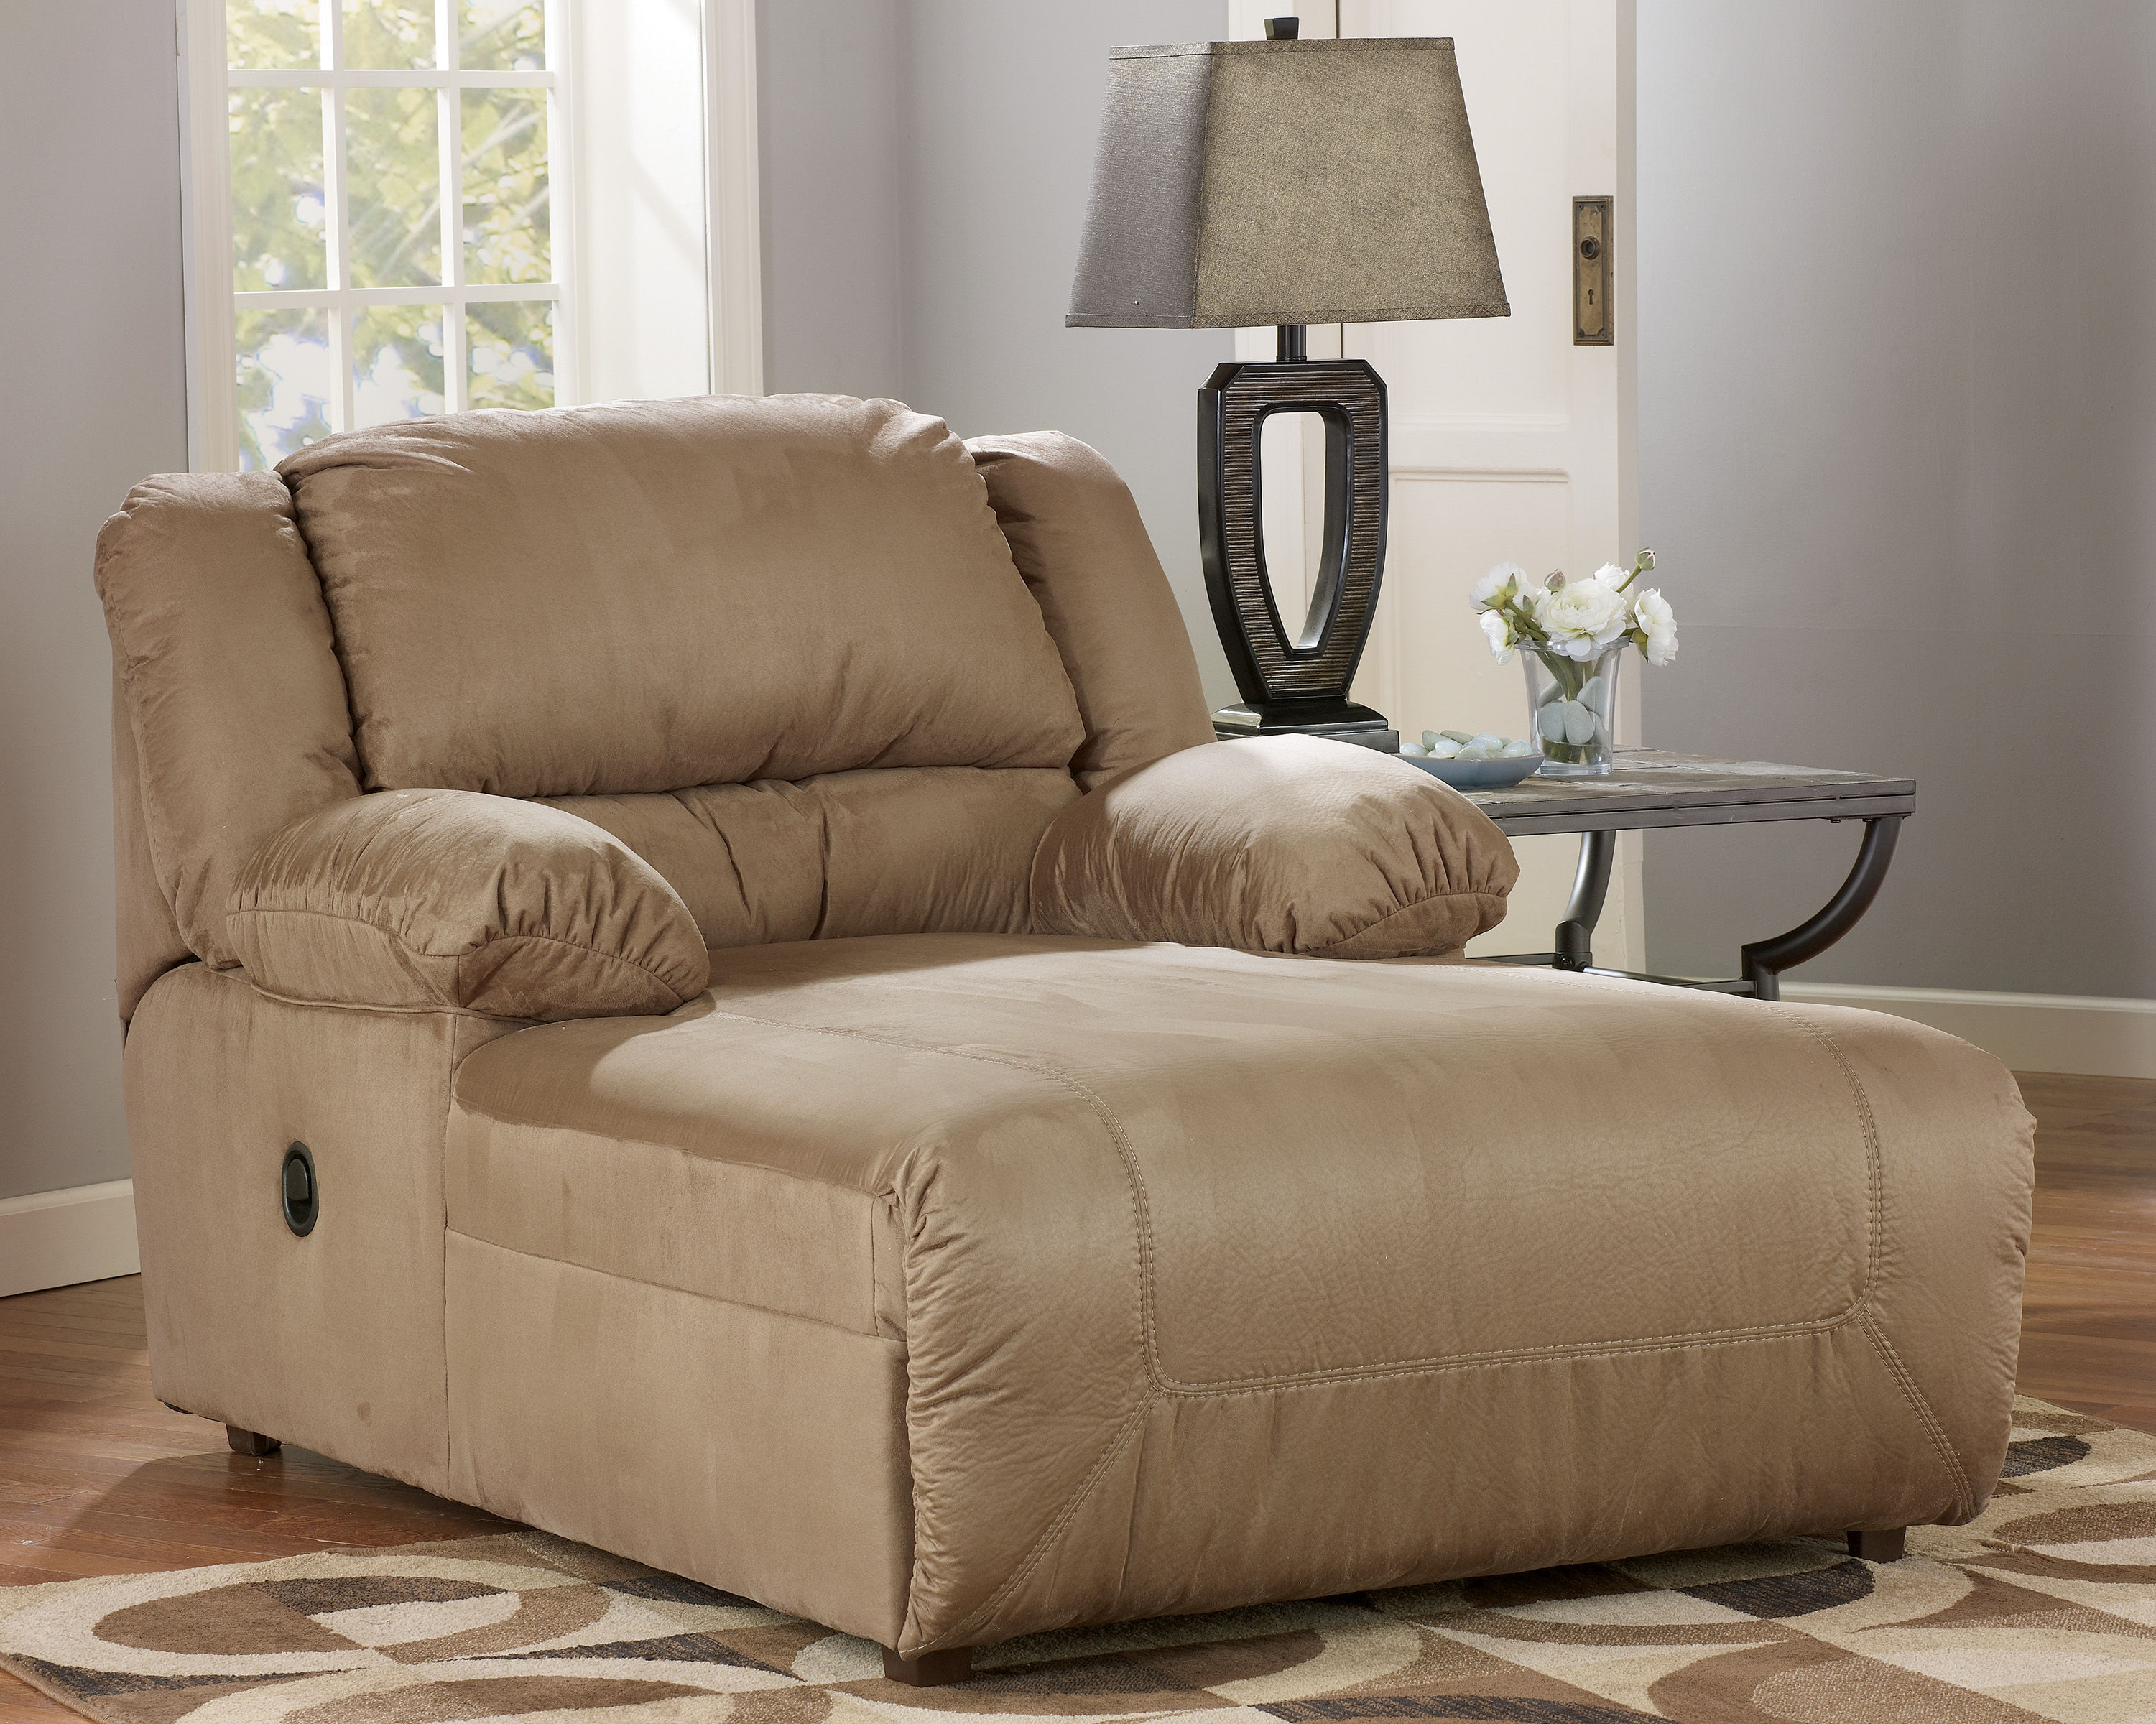 hogan contemporary mocha fabric pressback chaise w cushion back